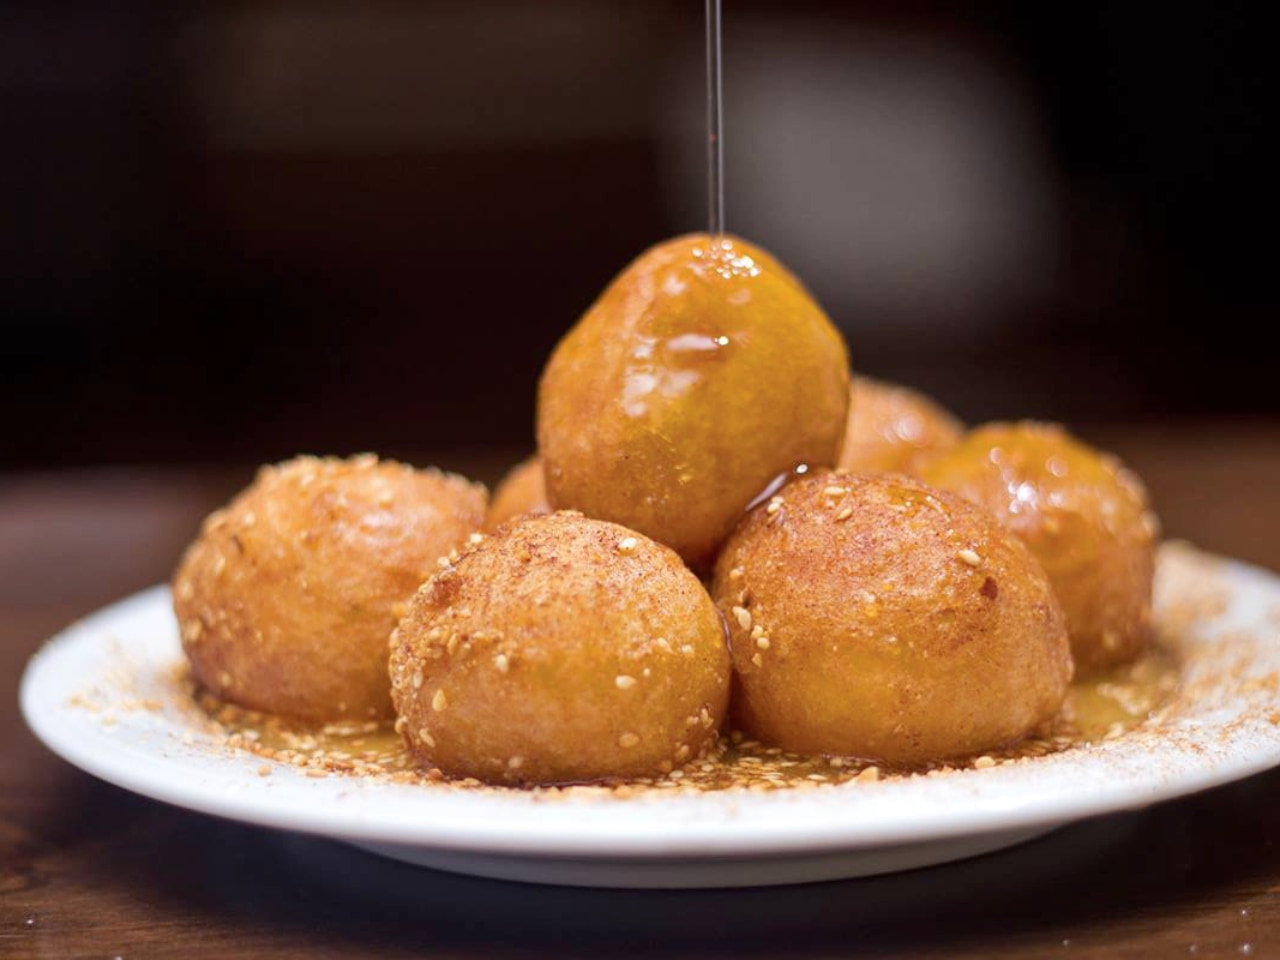 loukoumades cretan food, Heraklion travel guide, iraklion travel guide, heraklion things to do, heraklion activities, history of heraklion, museums heraklion, restaurants iraklion, events heraklion, travel tips heraklion, heraklion tours, crete travel, the crete you are looking for